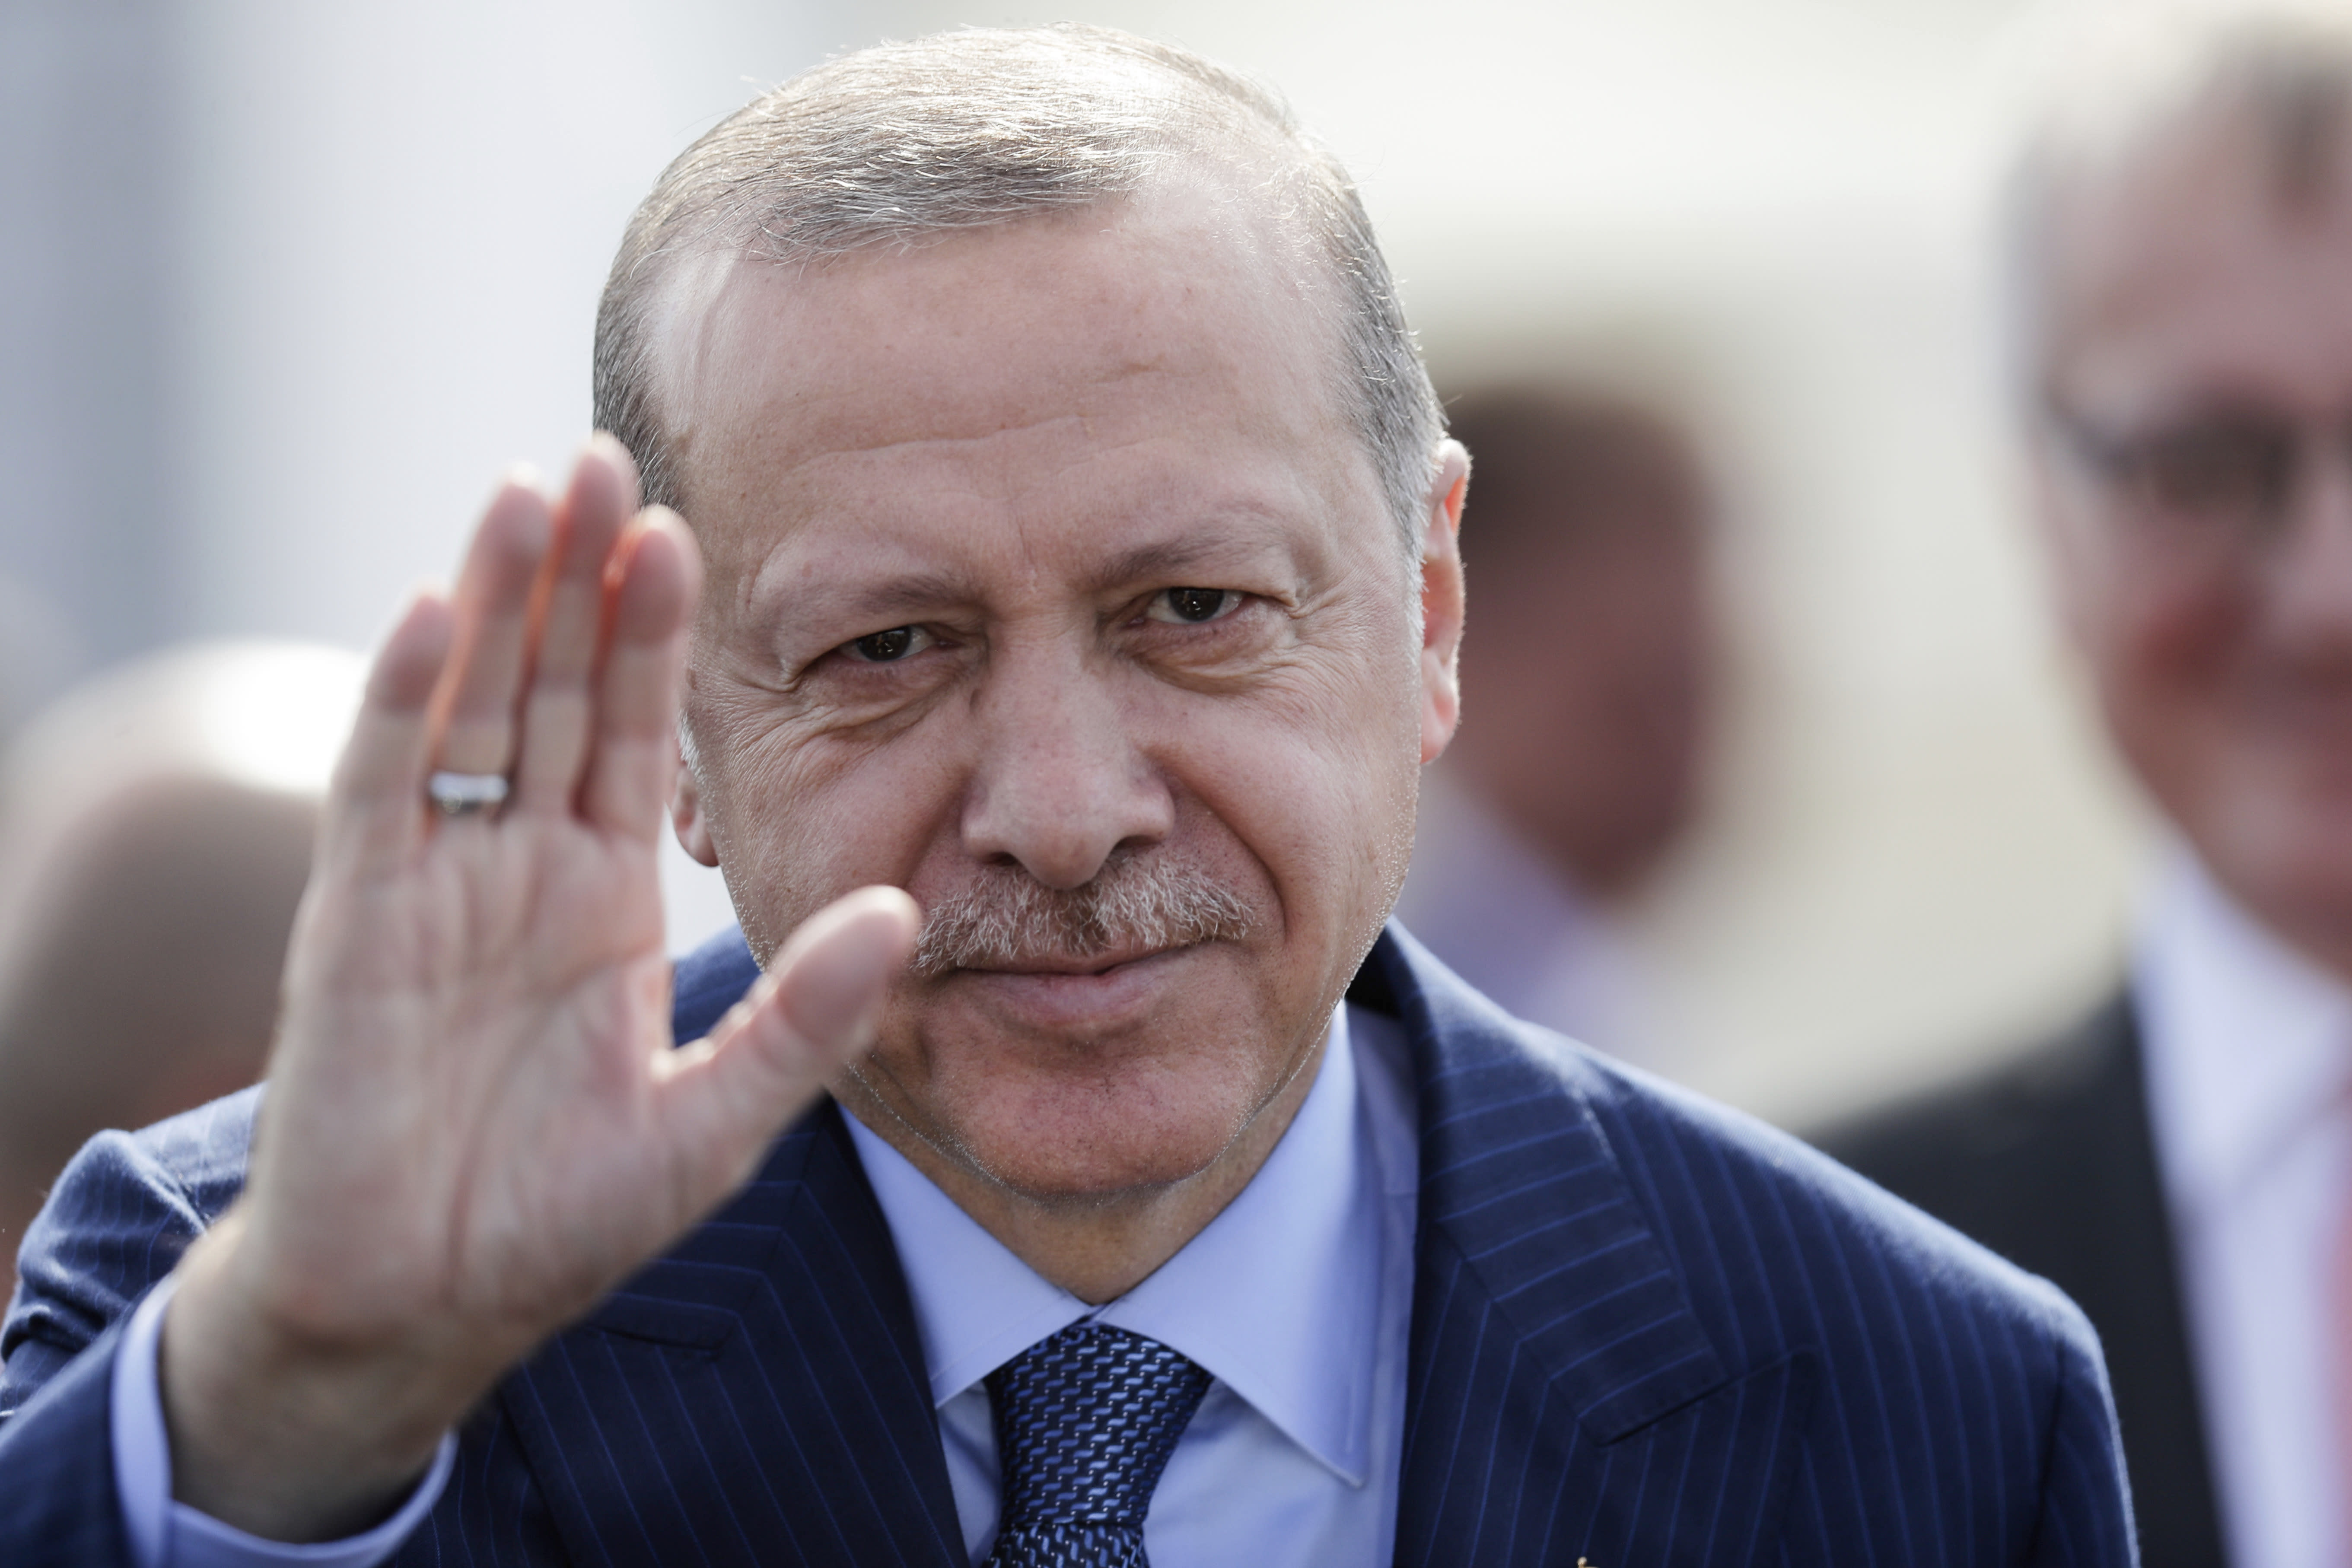 Turkey's President Recep Tayyip Erdogan waves to media after arrives at the airport Tegel for an official state visit in Germany at the capital Berlin, Thursday, Sept. 27, 2018. (AP Photo/Markus Schreiber)